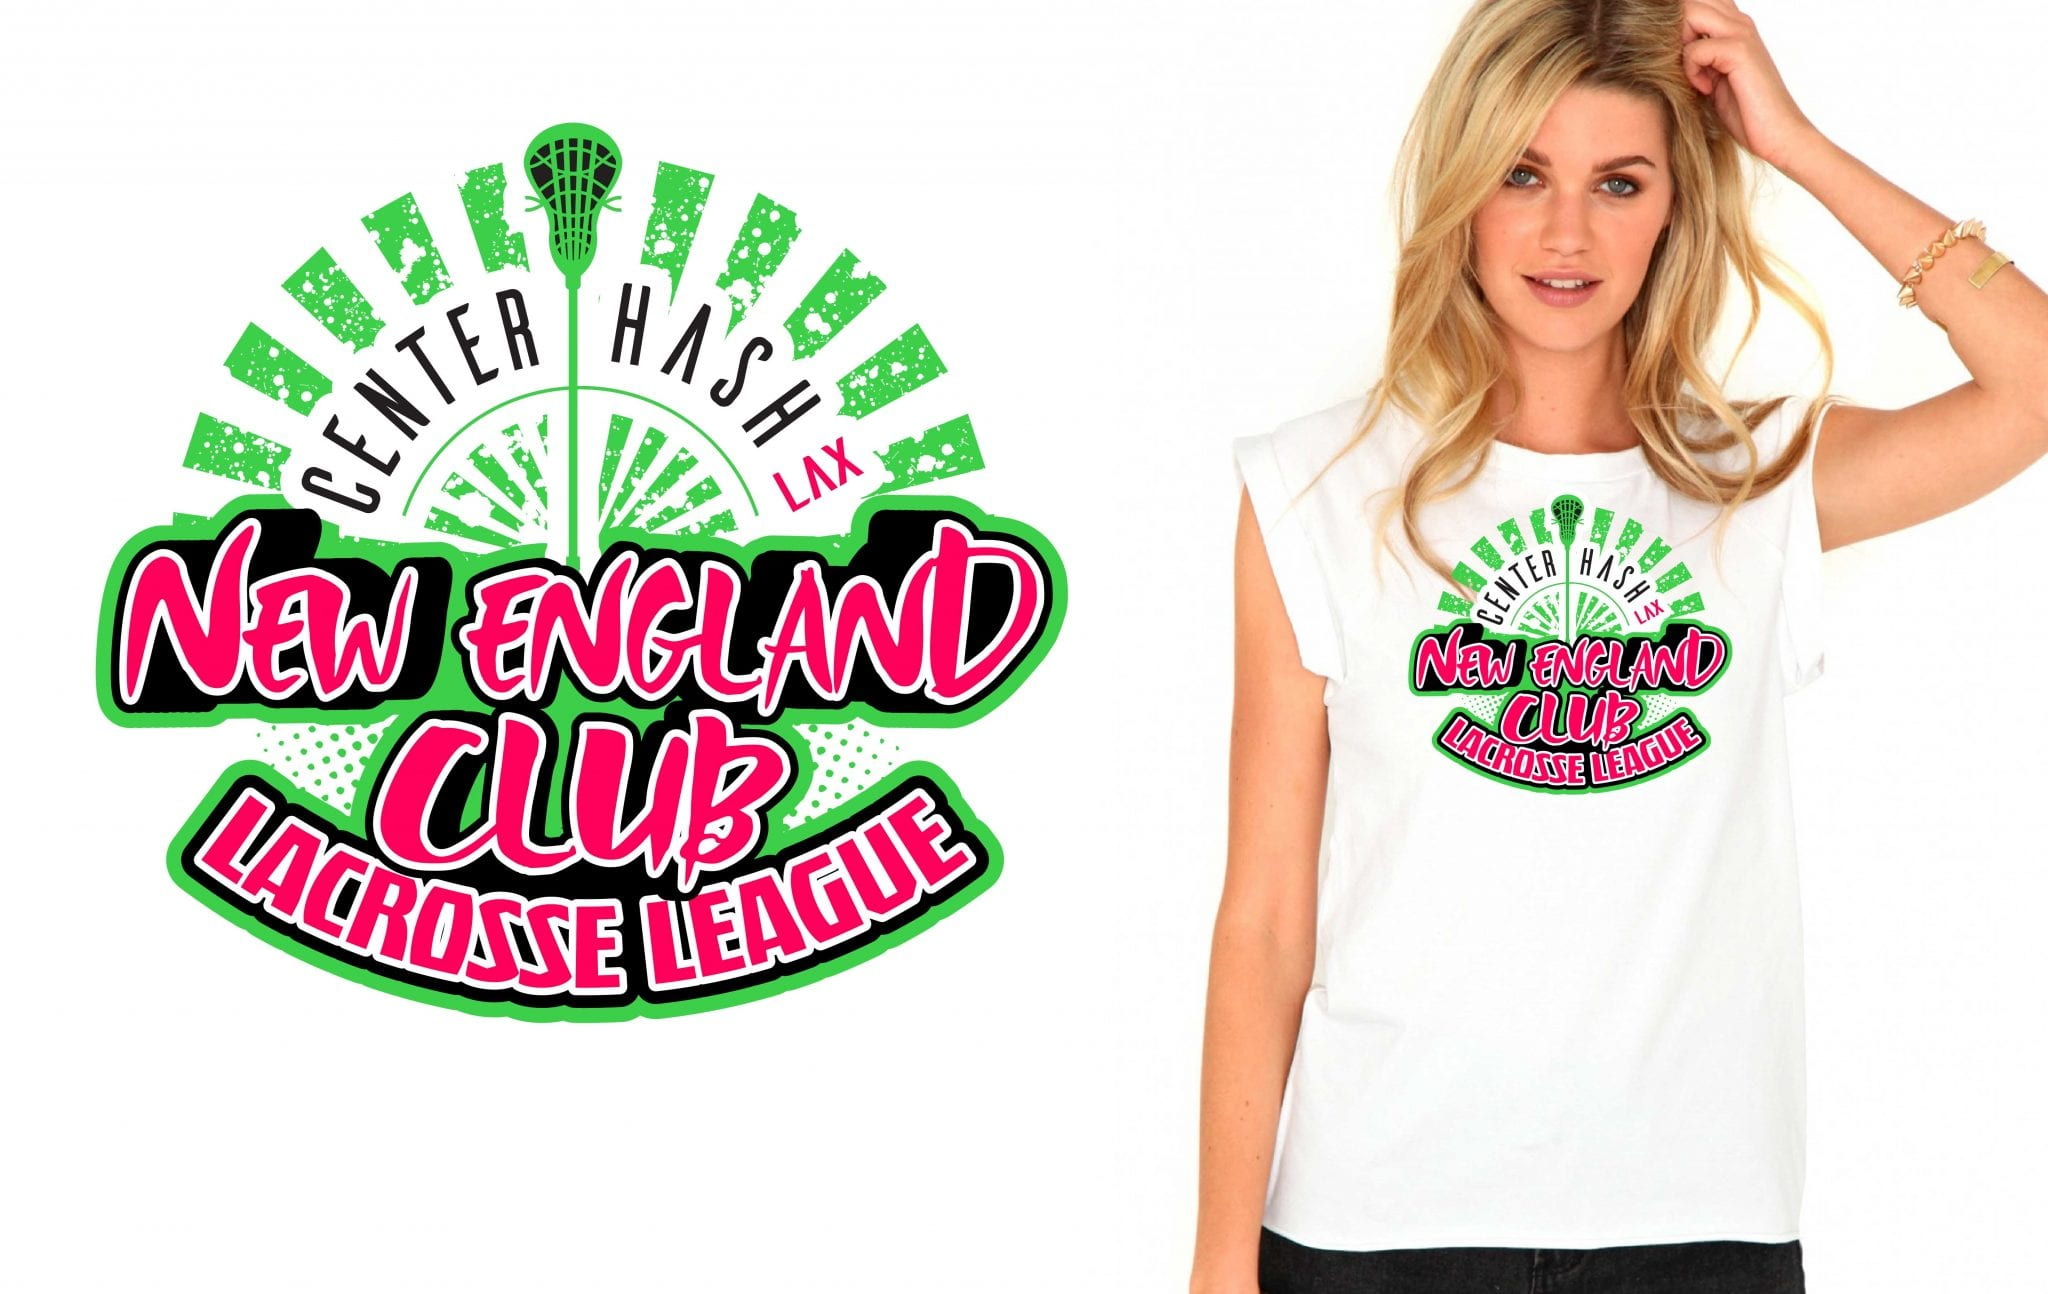 New England Club Lacrosse League awesome tshirt design